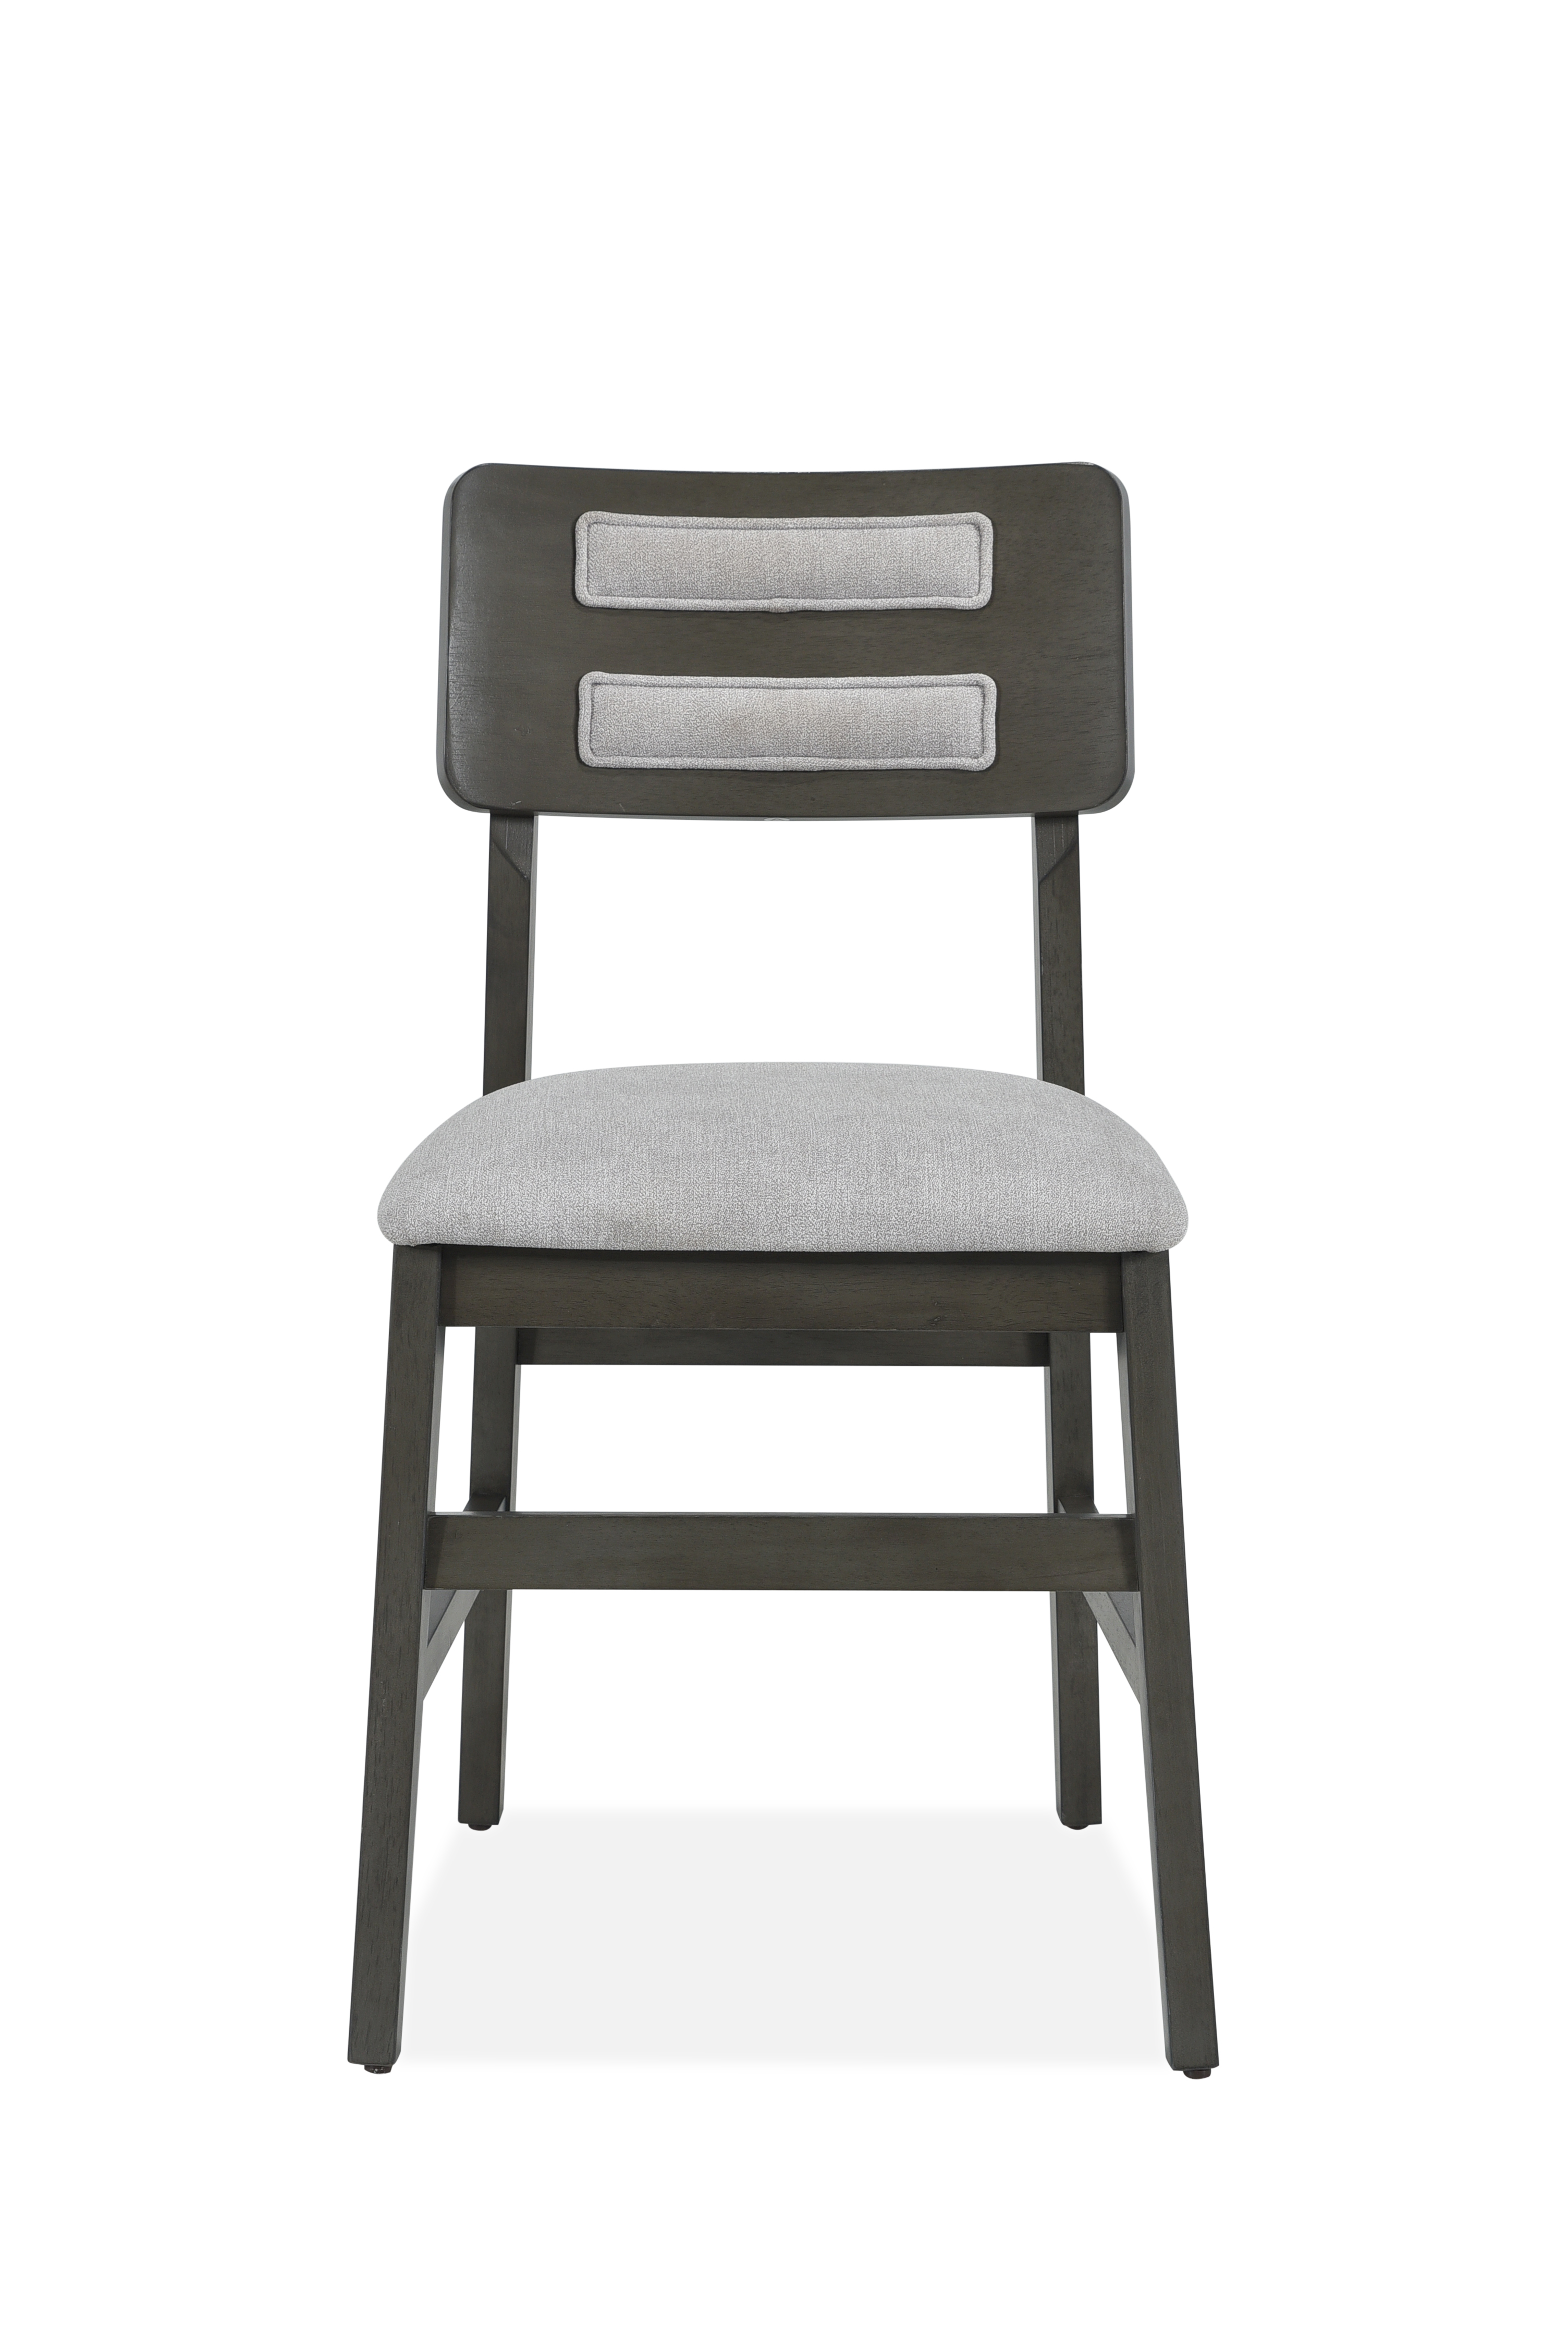 Bryson Dining Side Chair by New Classic at Wilson's Furniture